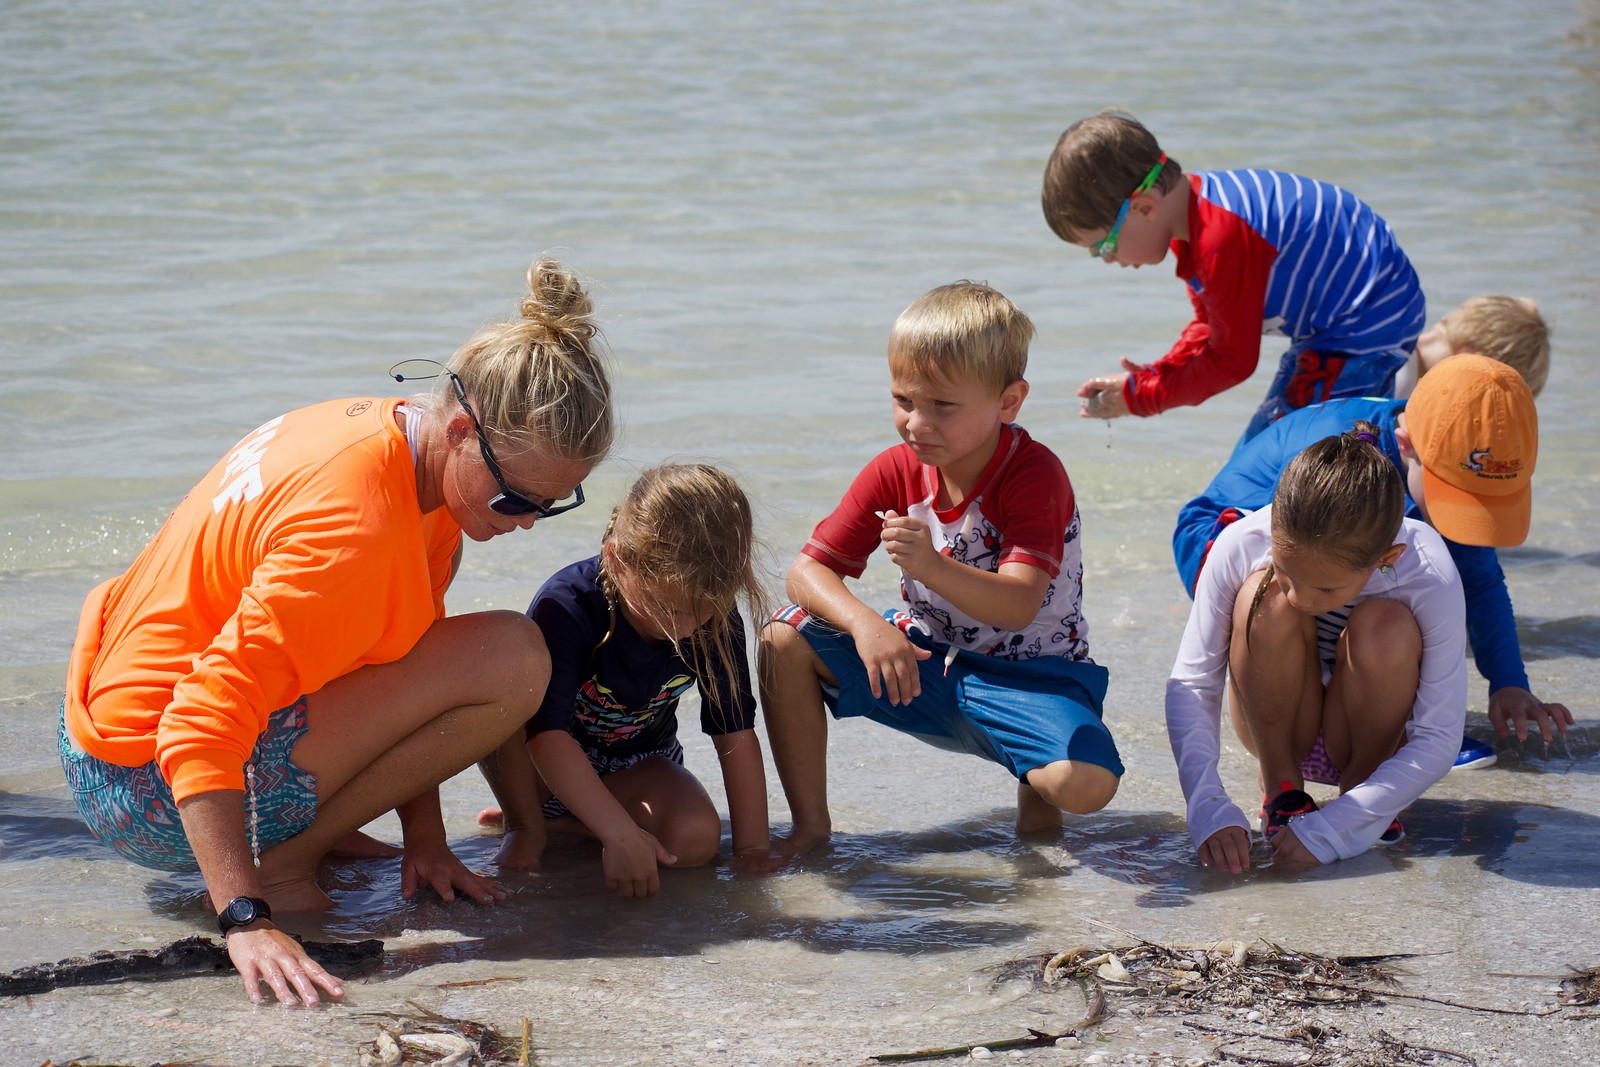 Children and families staying at Casa Ybel Resort can now enjoy Sanibel Sea School's ocean education programs at their doorstep.